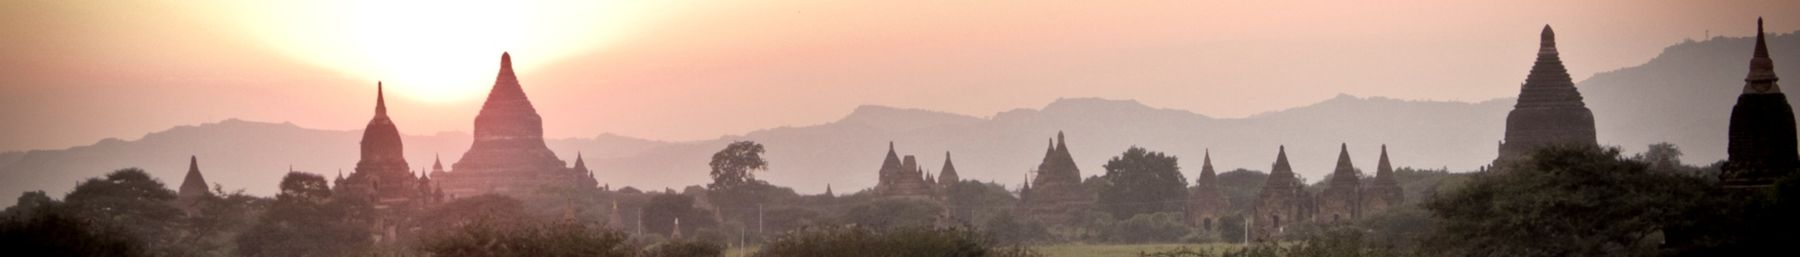 A view over the temples of Bagan at dawn.